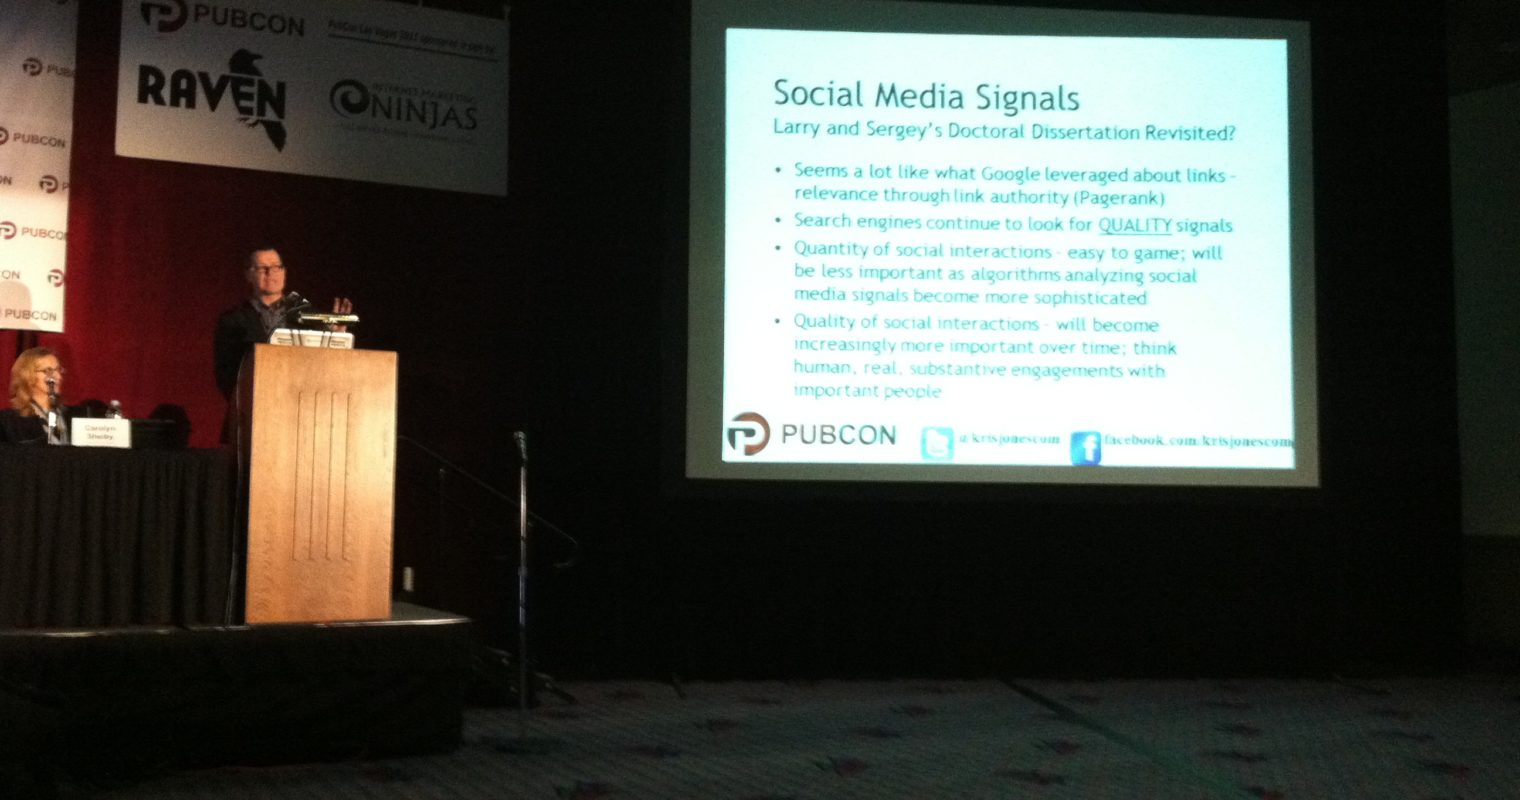 PubCon: Kristopher Jones on Increasing Klout Score and Social Presence